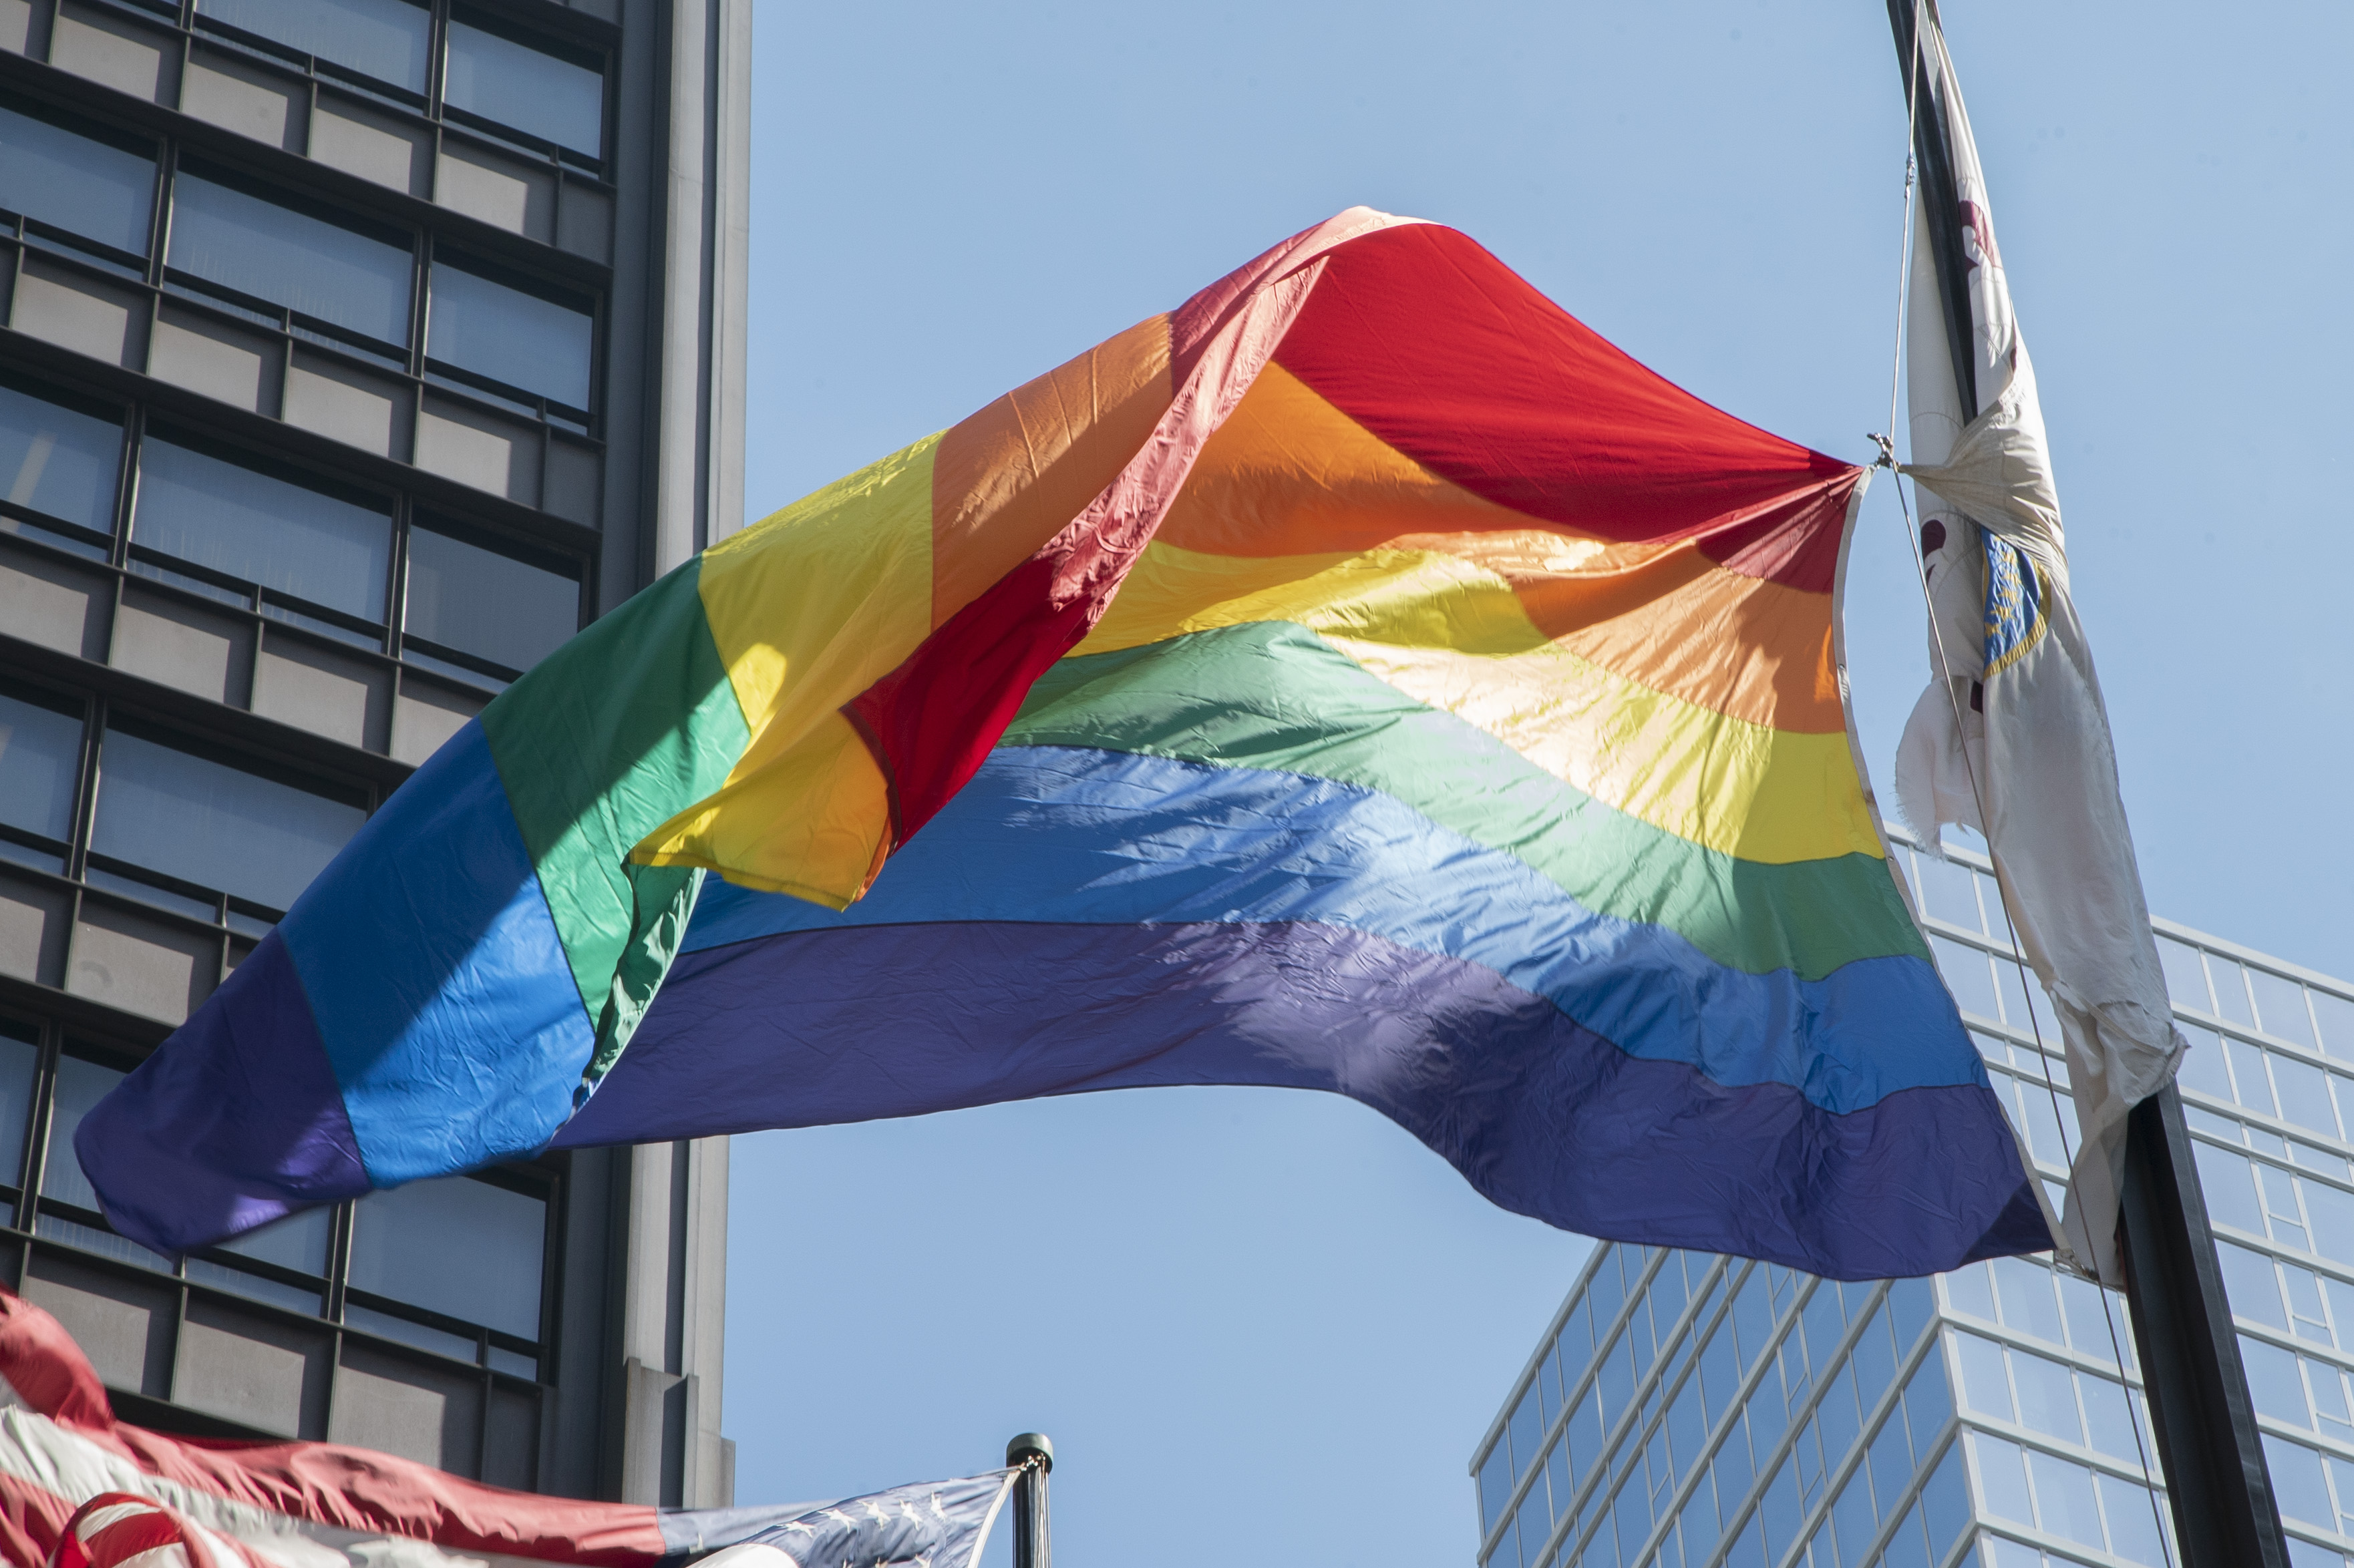 A rainbow flag will fly in Daley Plaza throughout June.